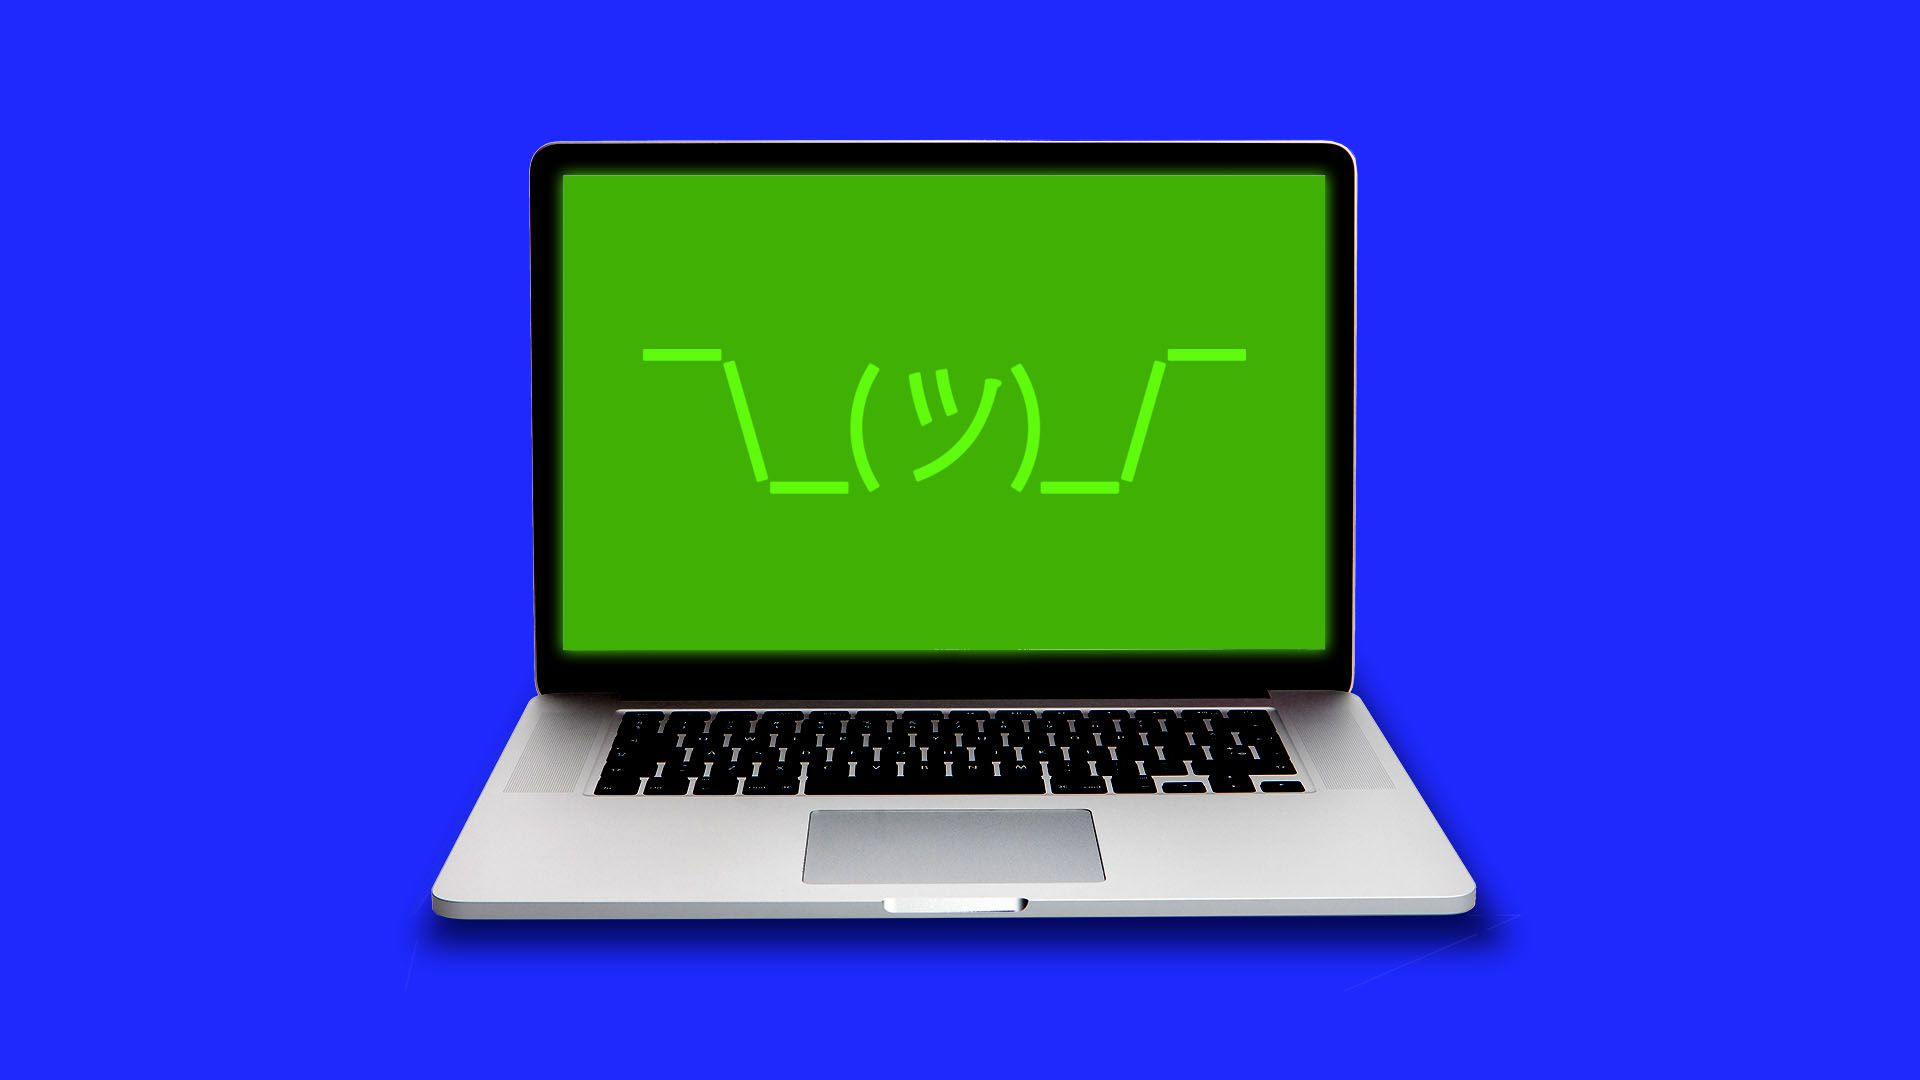 Illustration of a computer with a shrug emoji on the screen